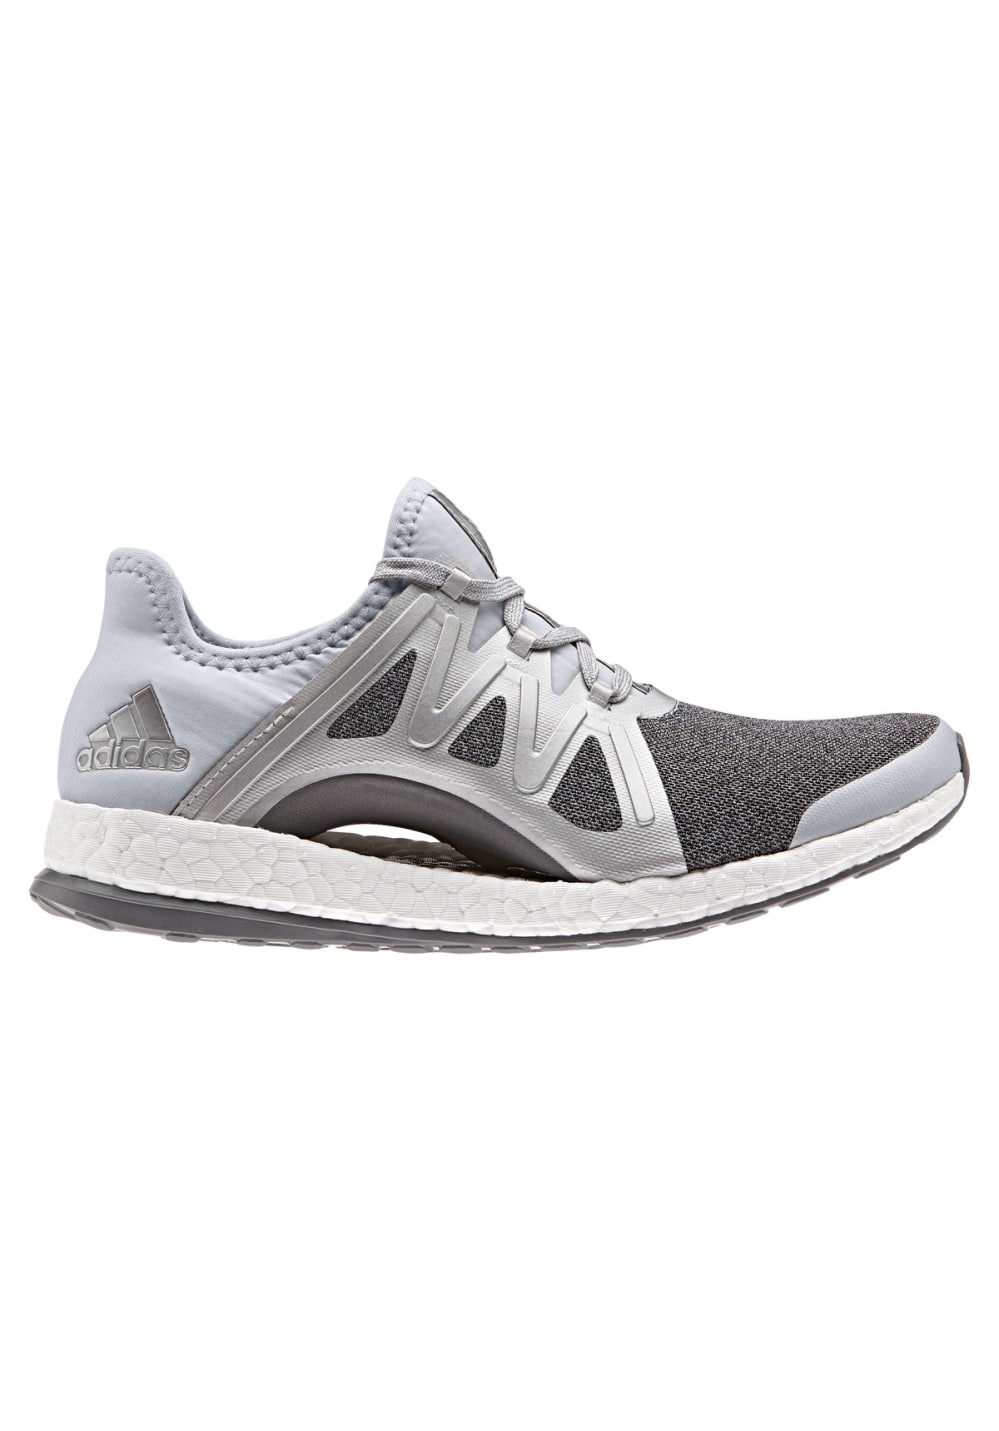 low priced 0708f 4dd36 adidas Pure Boost Xpose - Running shoes for Women - Grey